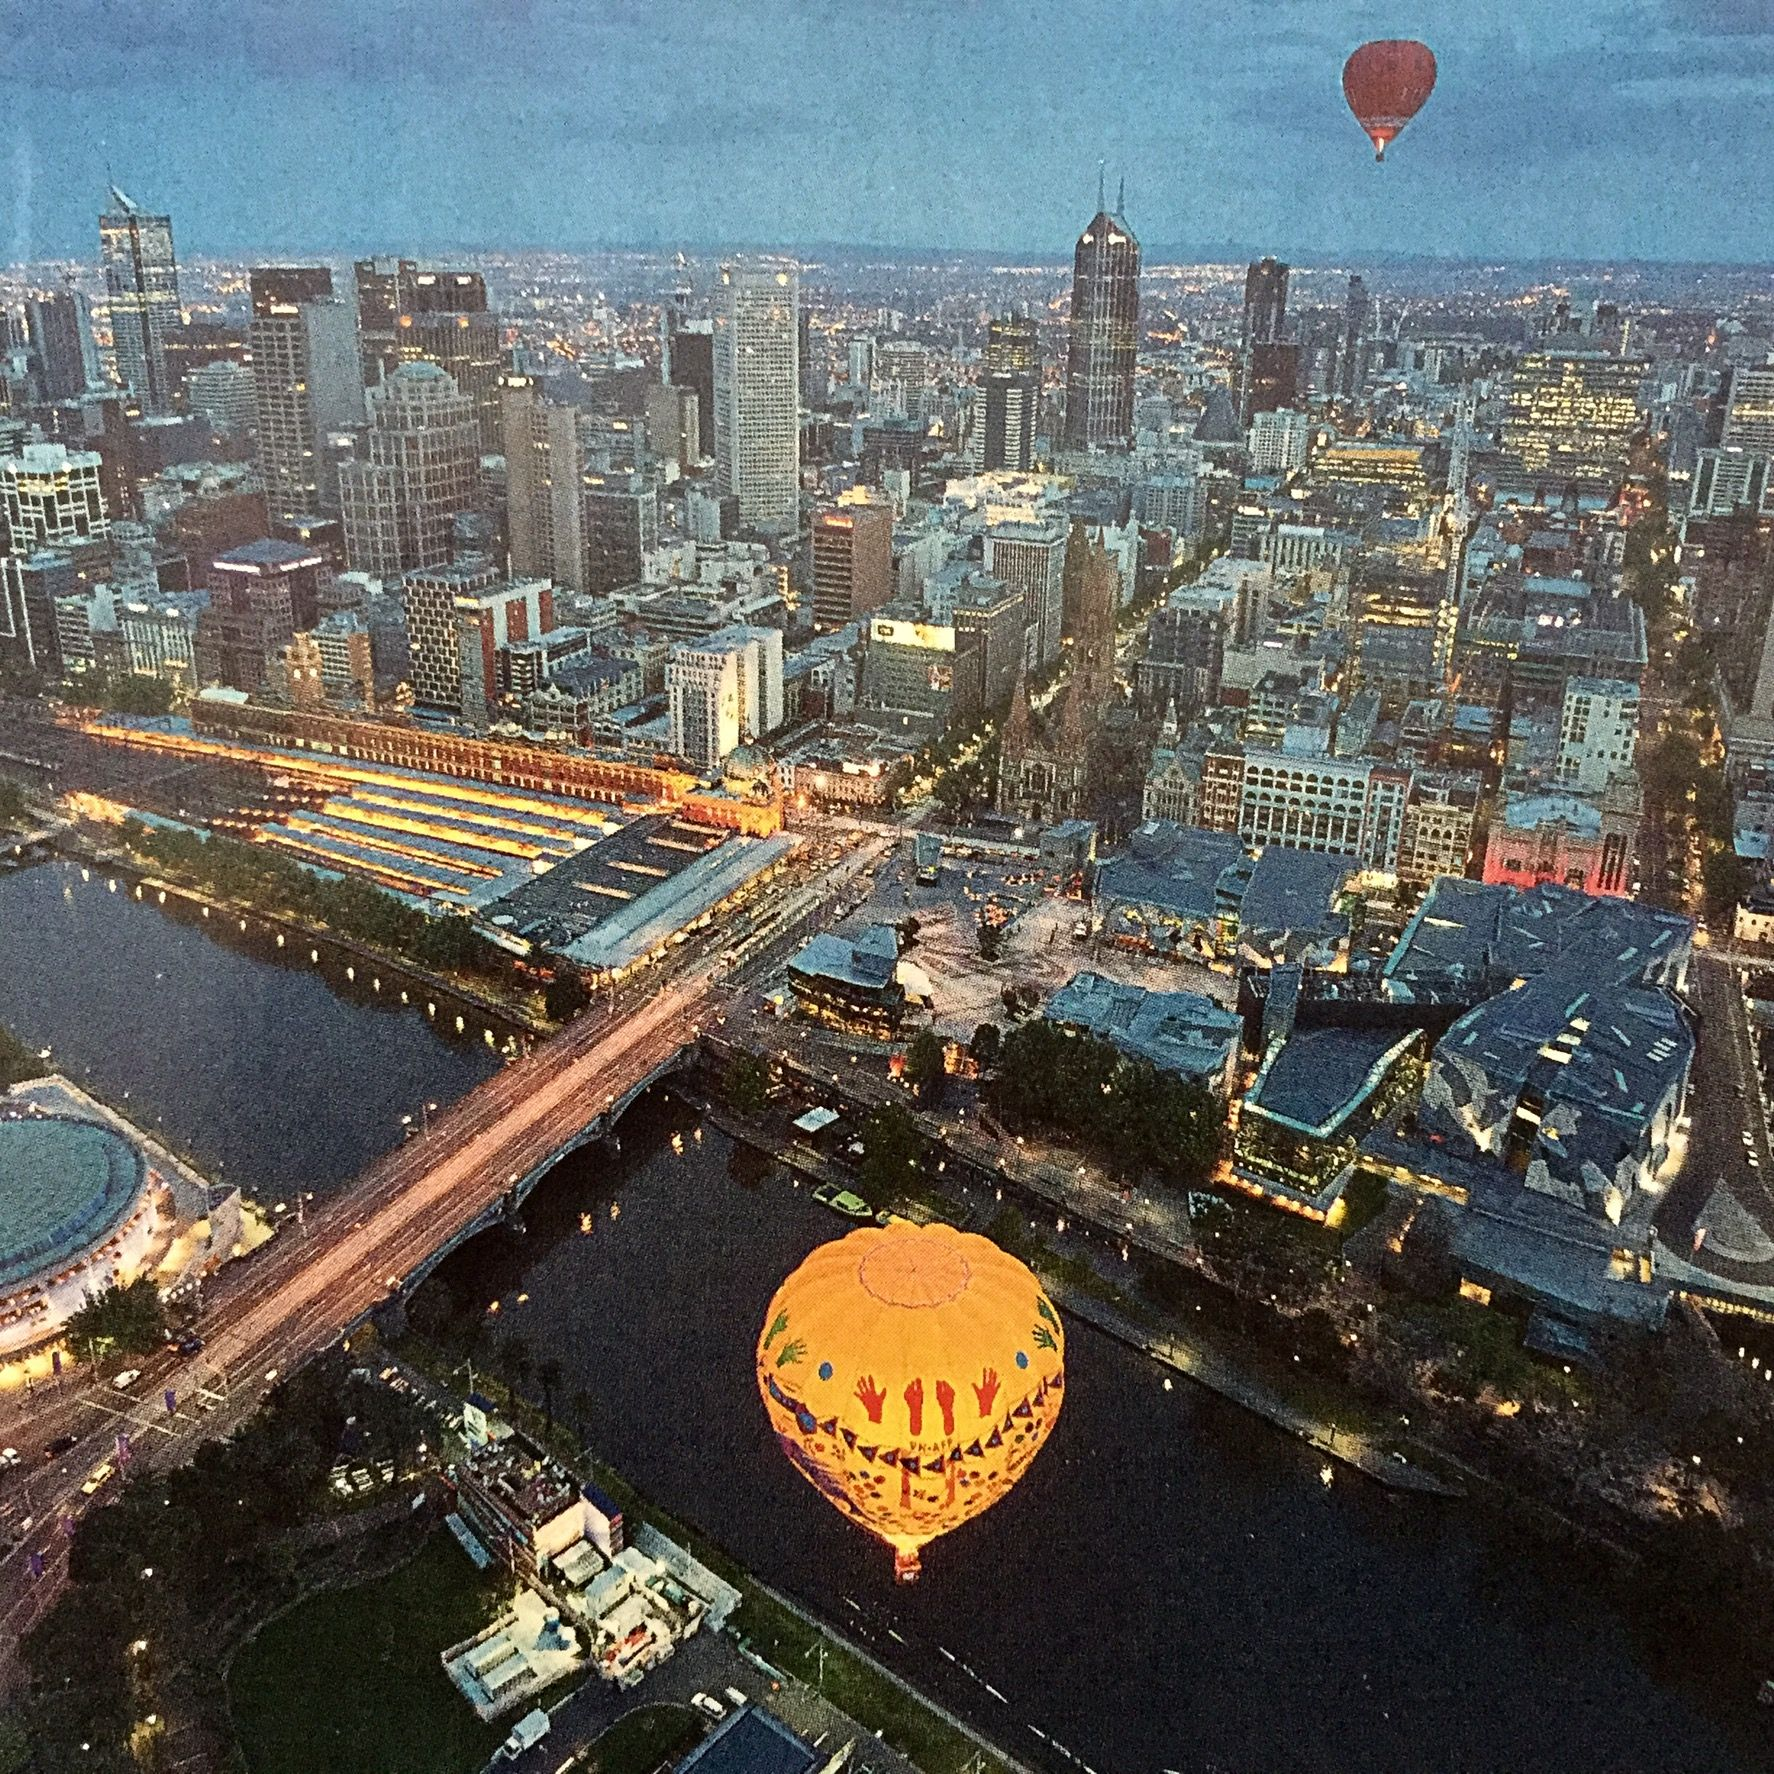 Over melbourne picture of global ballooning melbourne and yarra - Hot Air Balloons Over Melbourne Victoria Australia With The Yarra River I Loved